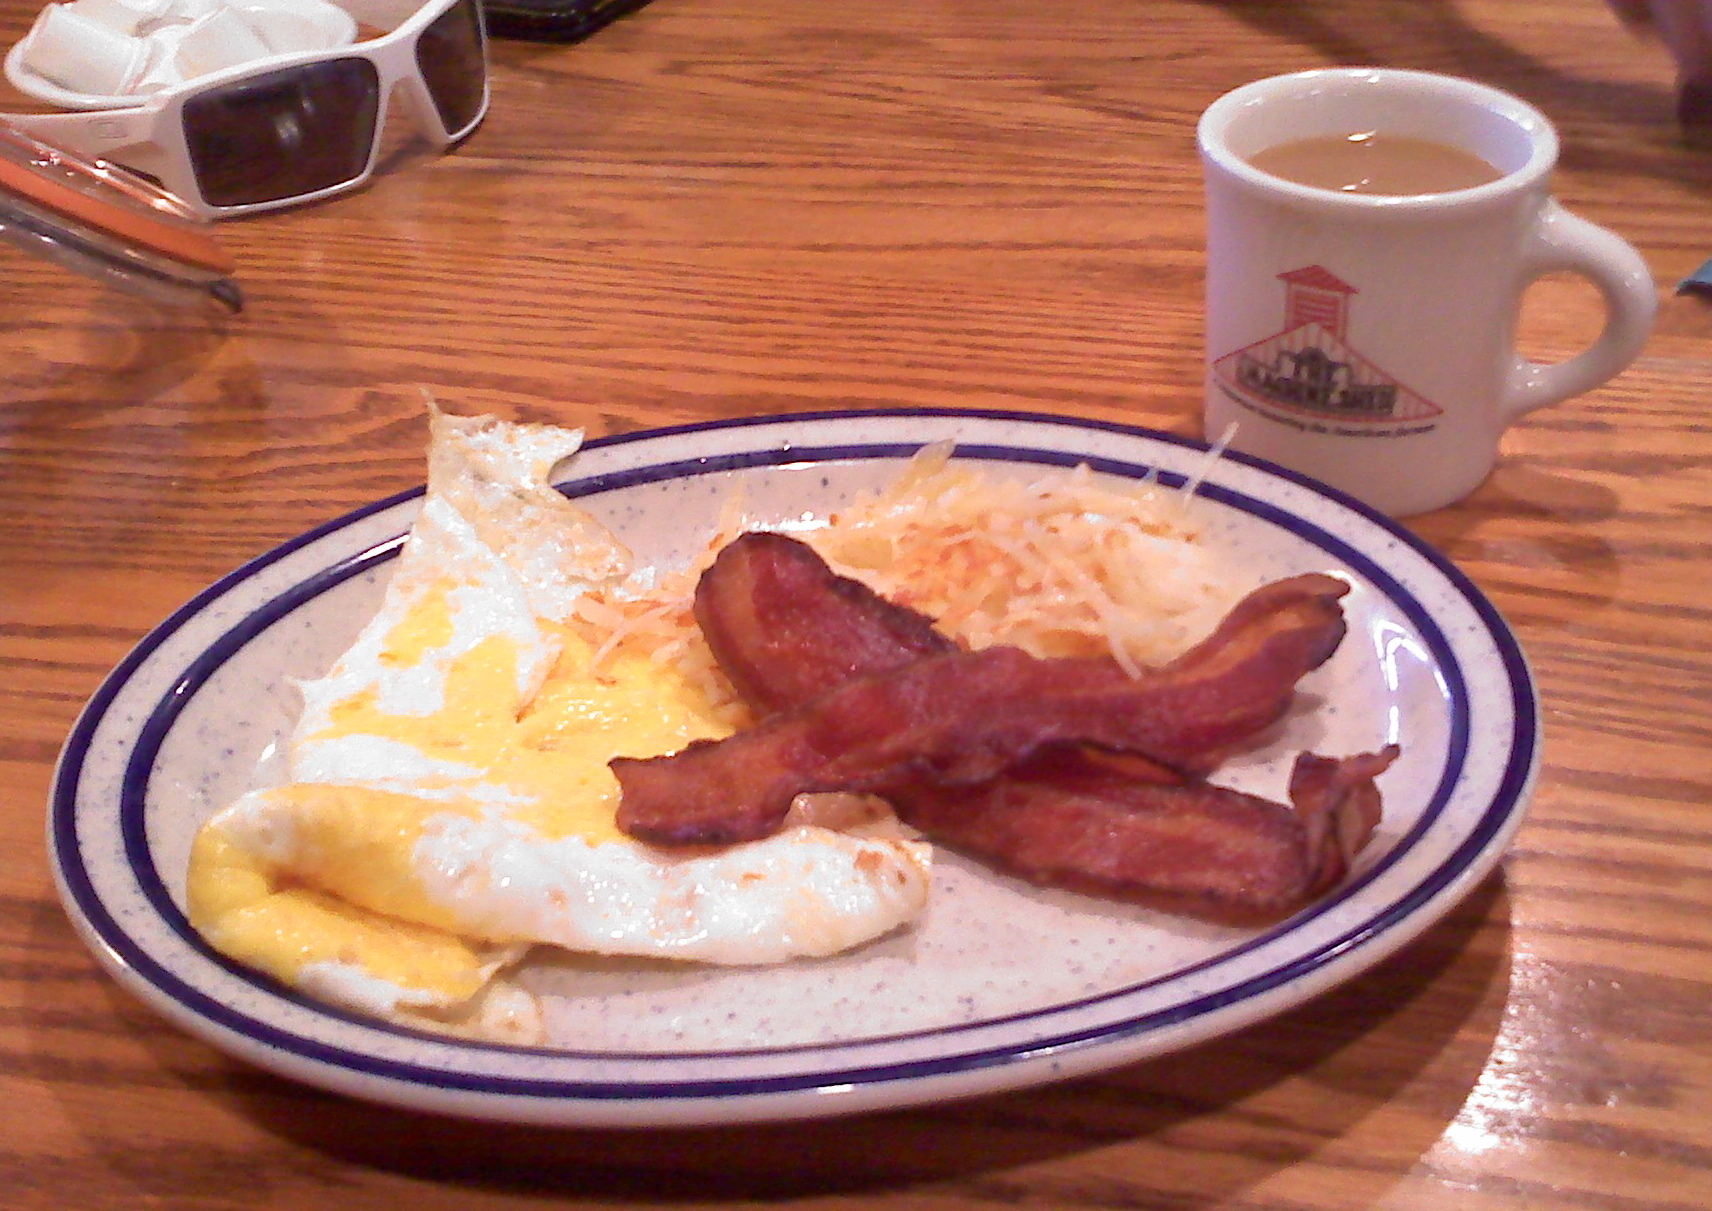 The Machine Shed, Rockford, IL :: 3 eggs over hard, 3 THICK bacon slices, potatoes, and a mid-western coffee - a good breakfast at 10:00 AM in the morning.